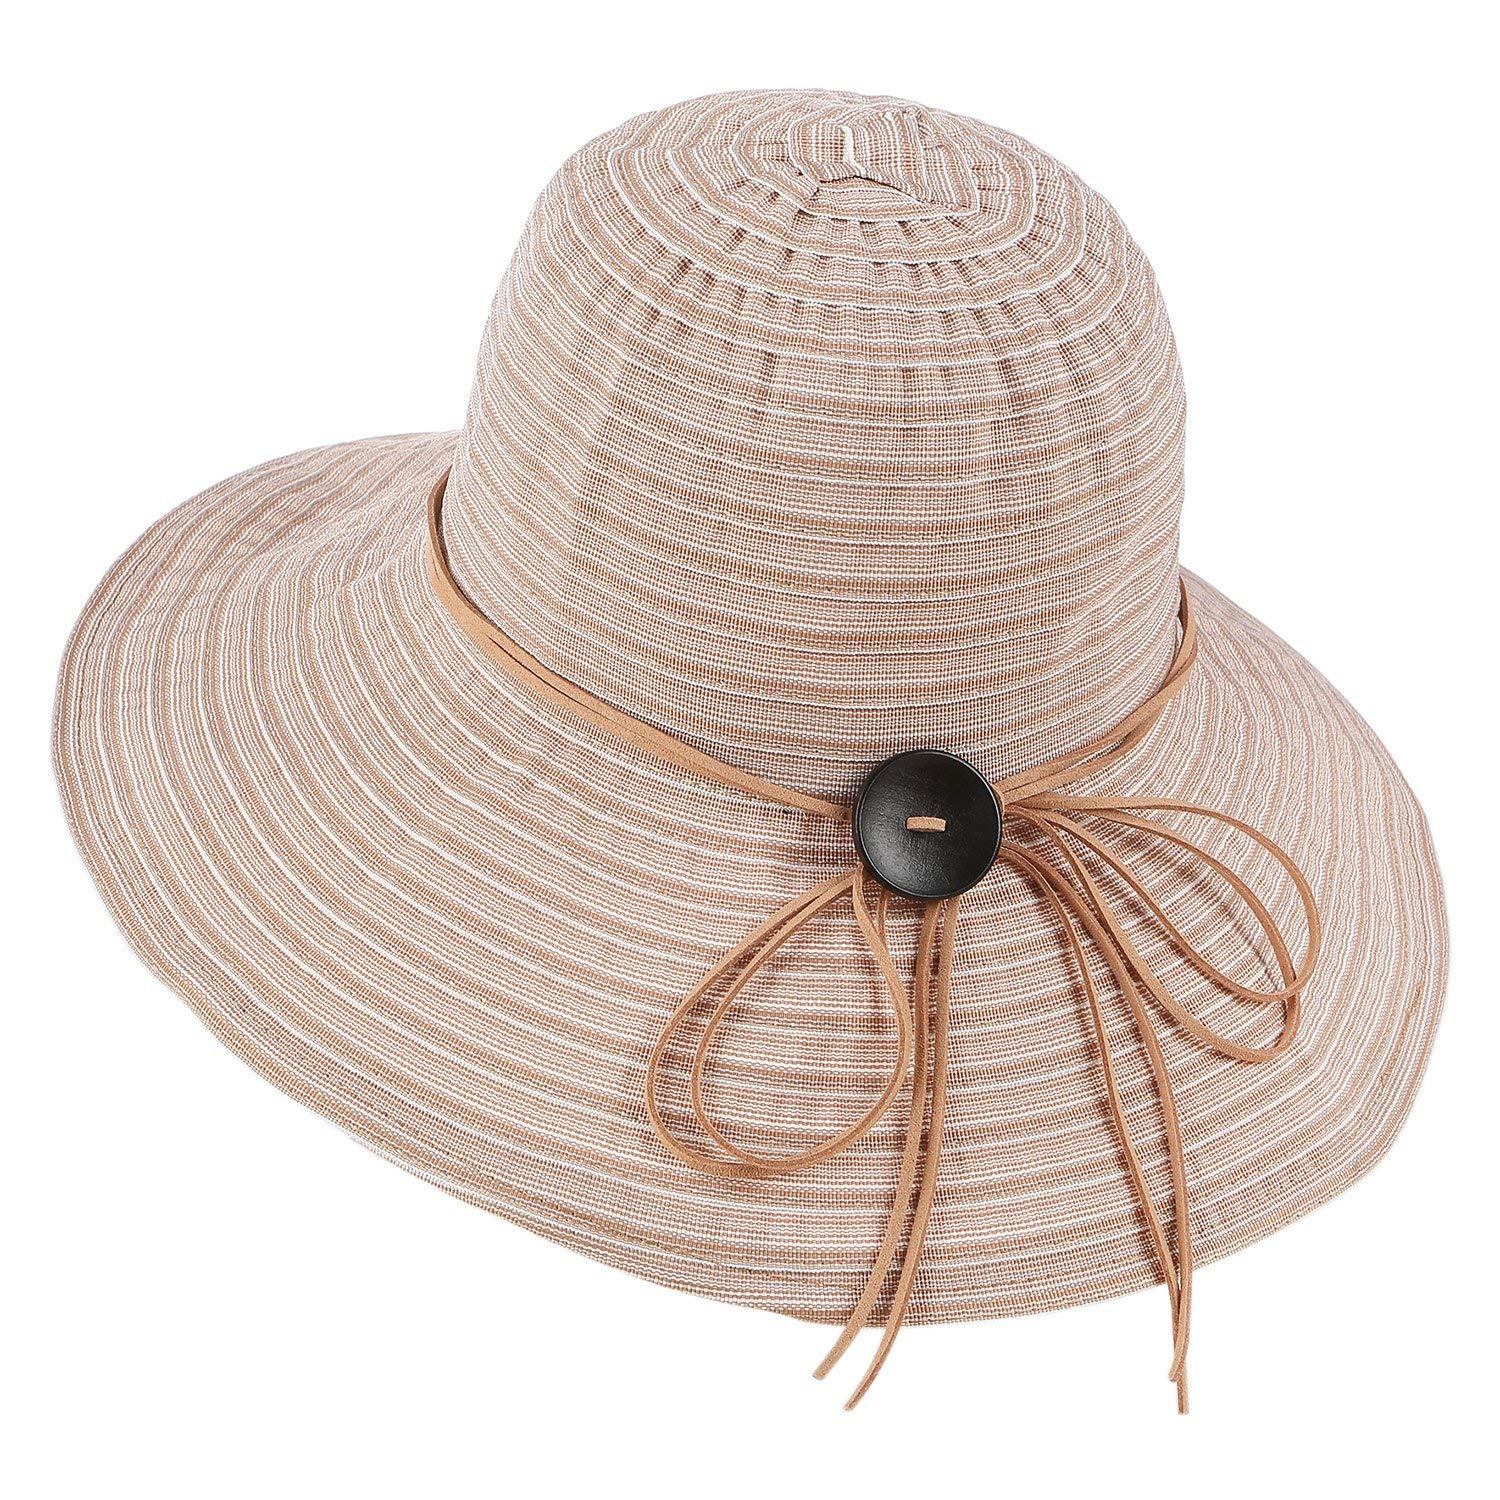 3d525e65e12 Get Quotations · Women's Packable Sun Hat with Chin Cord Wide Brim Cotton Beach  Hat Adjustable